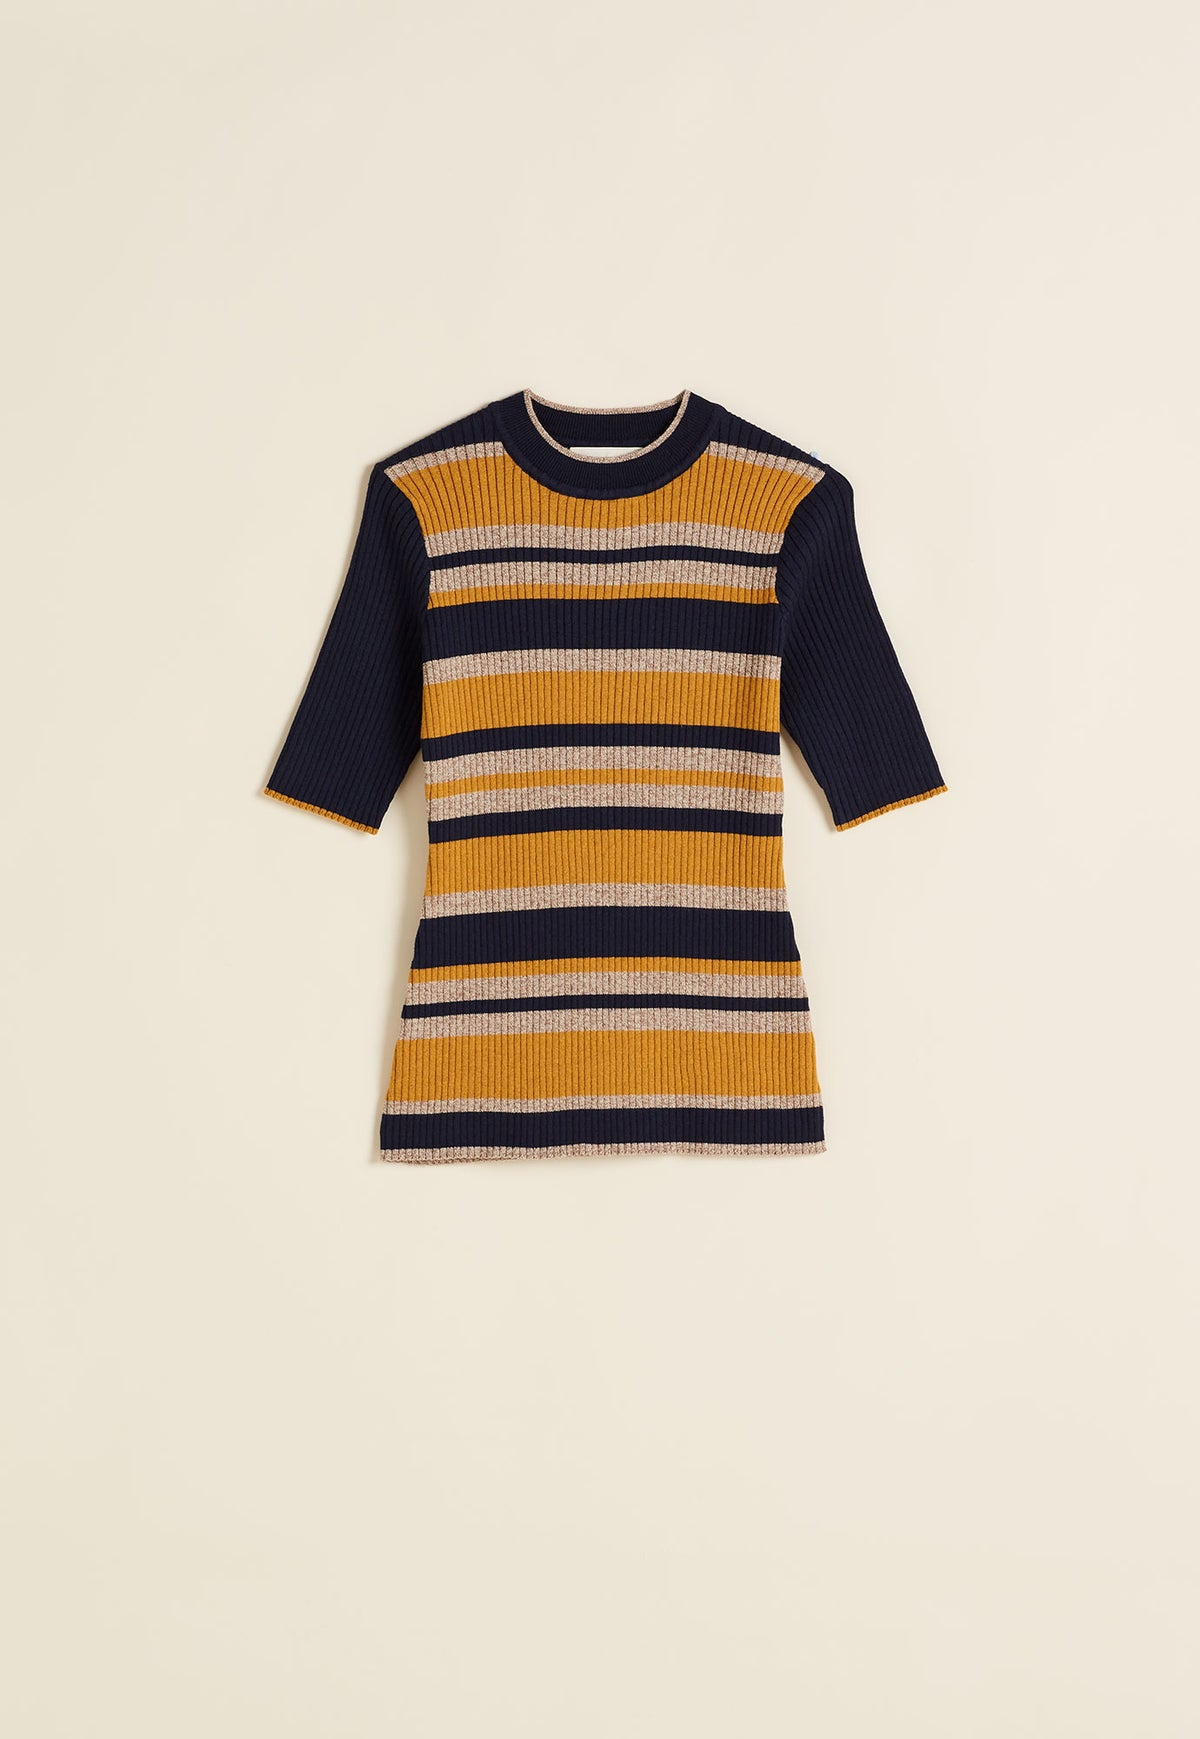 Rib Knit Short Sleeve - Navy